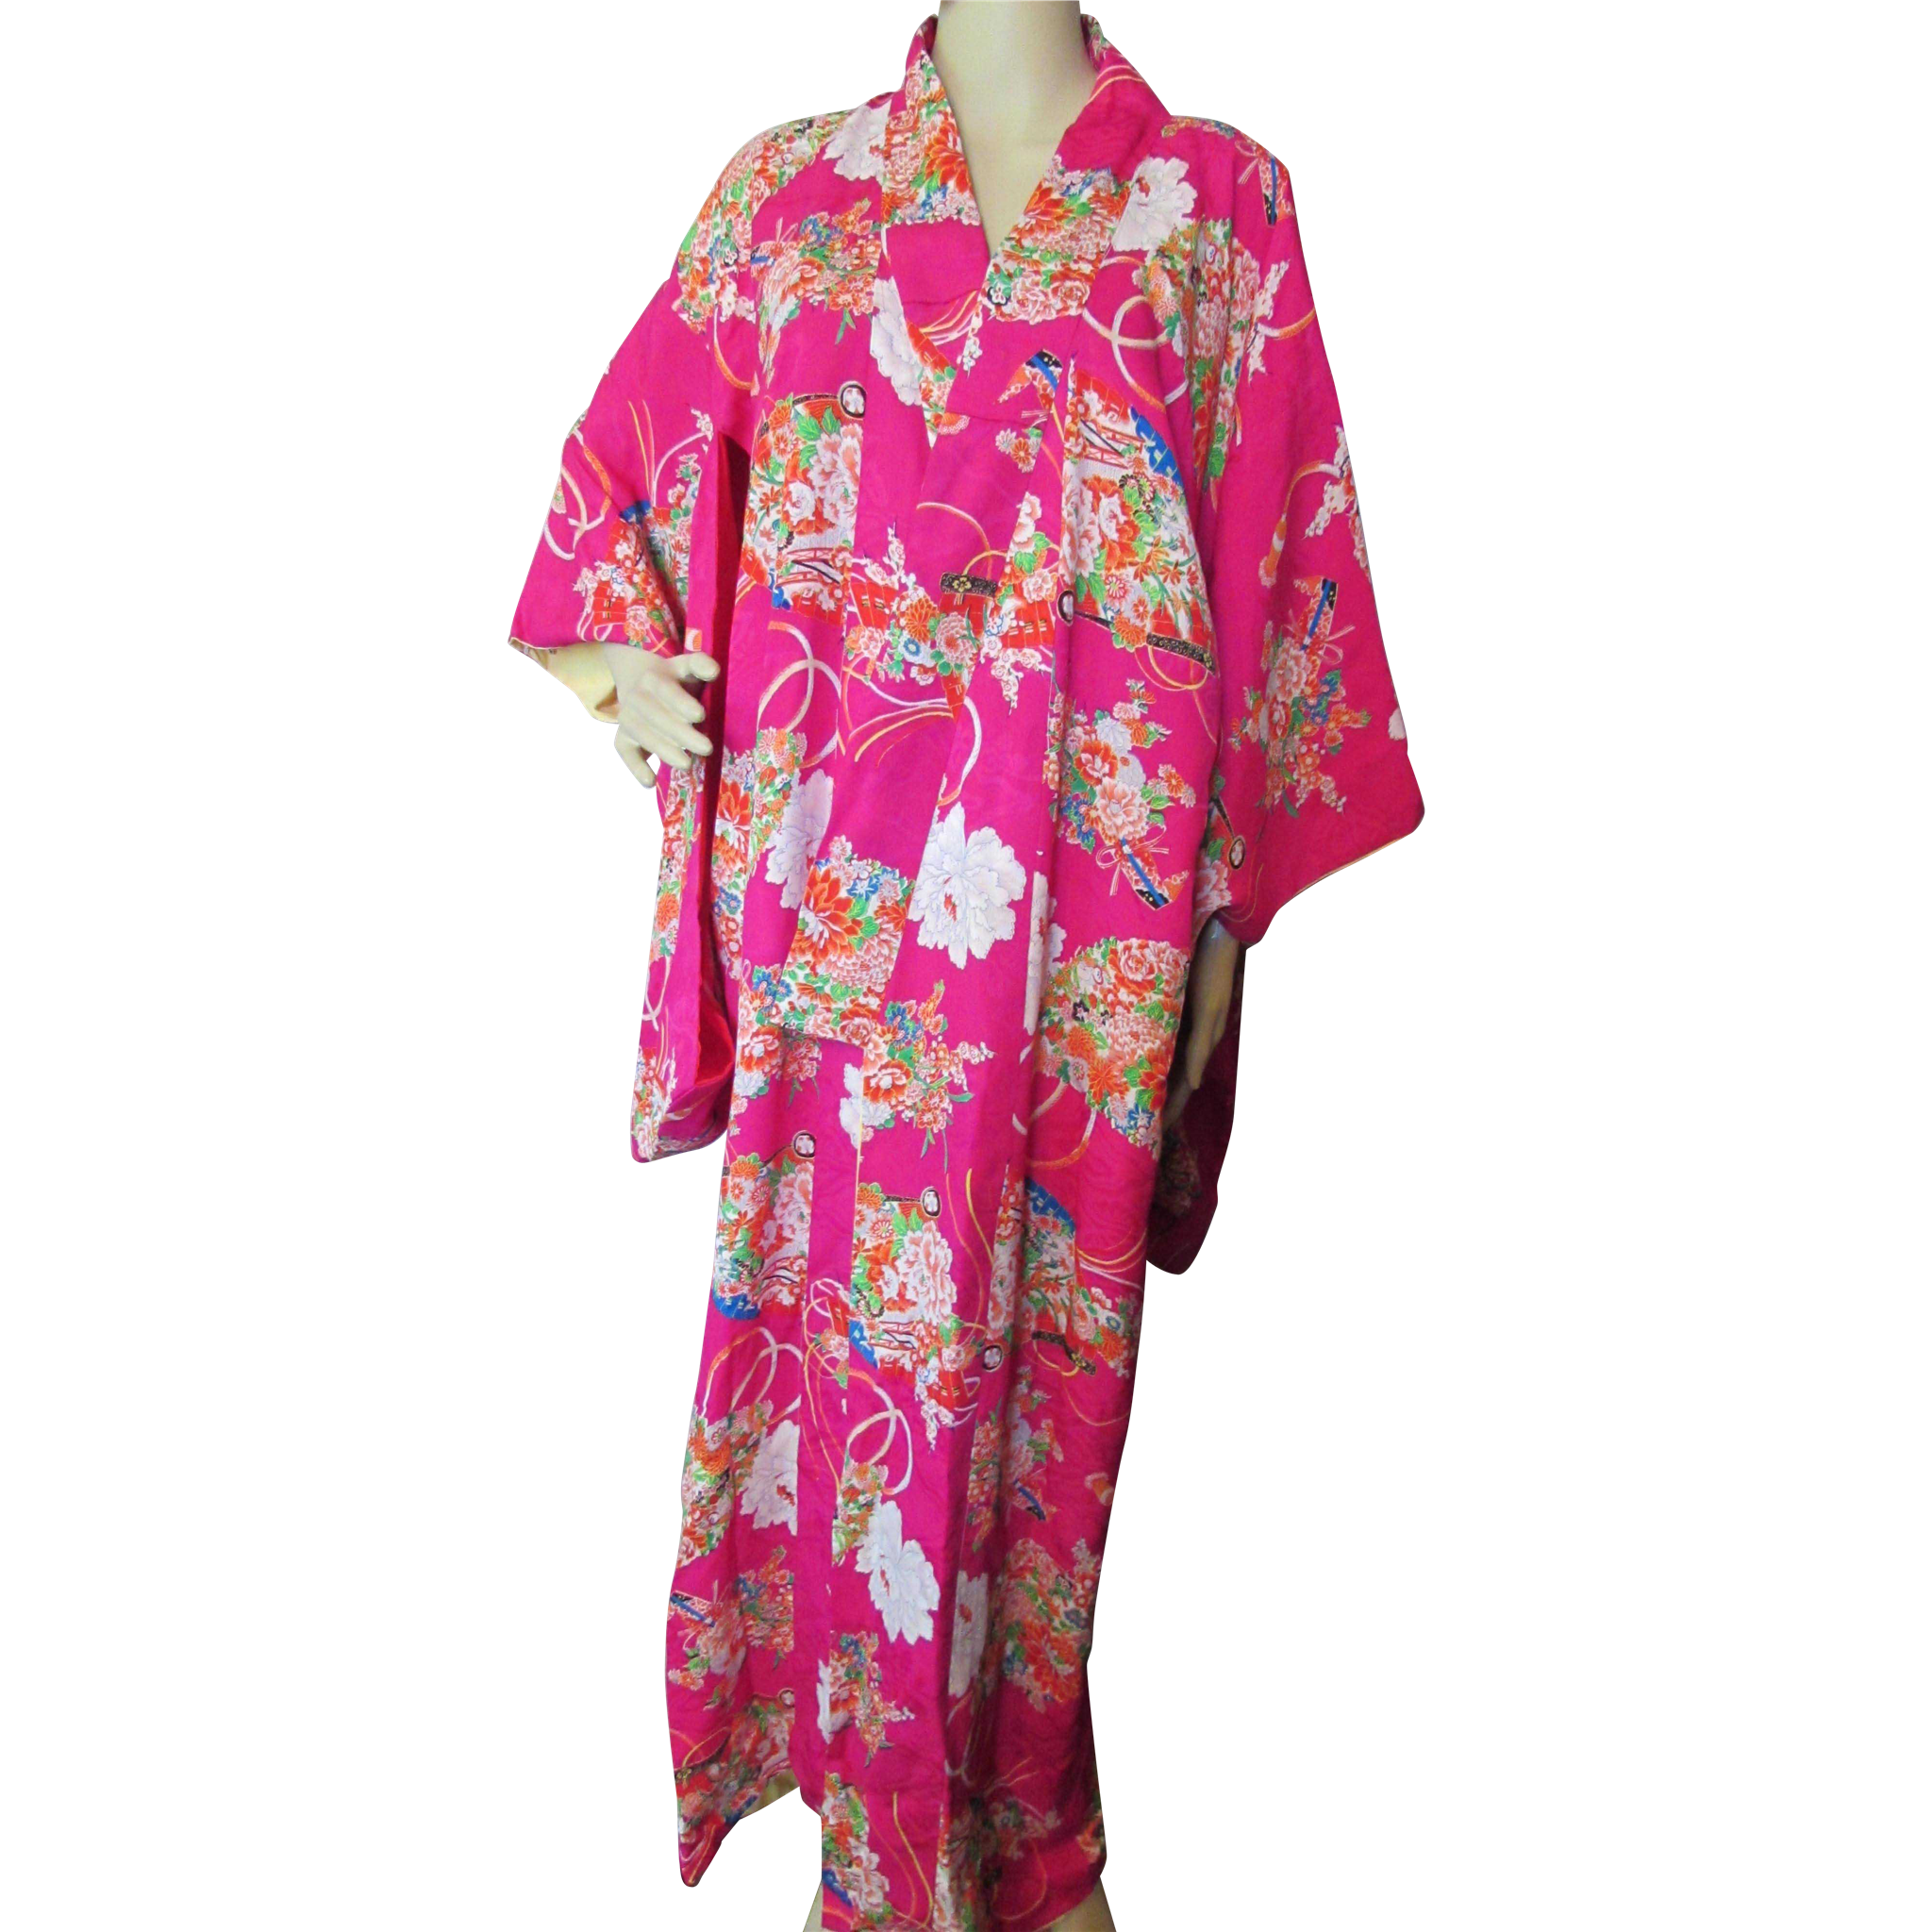 Asian Influence Kimono Robe in Fuchsia Pink and Fan Design